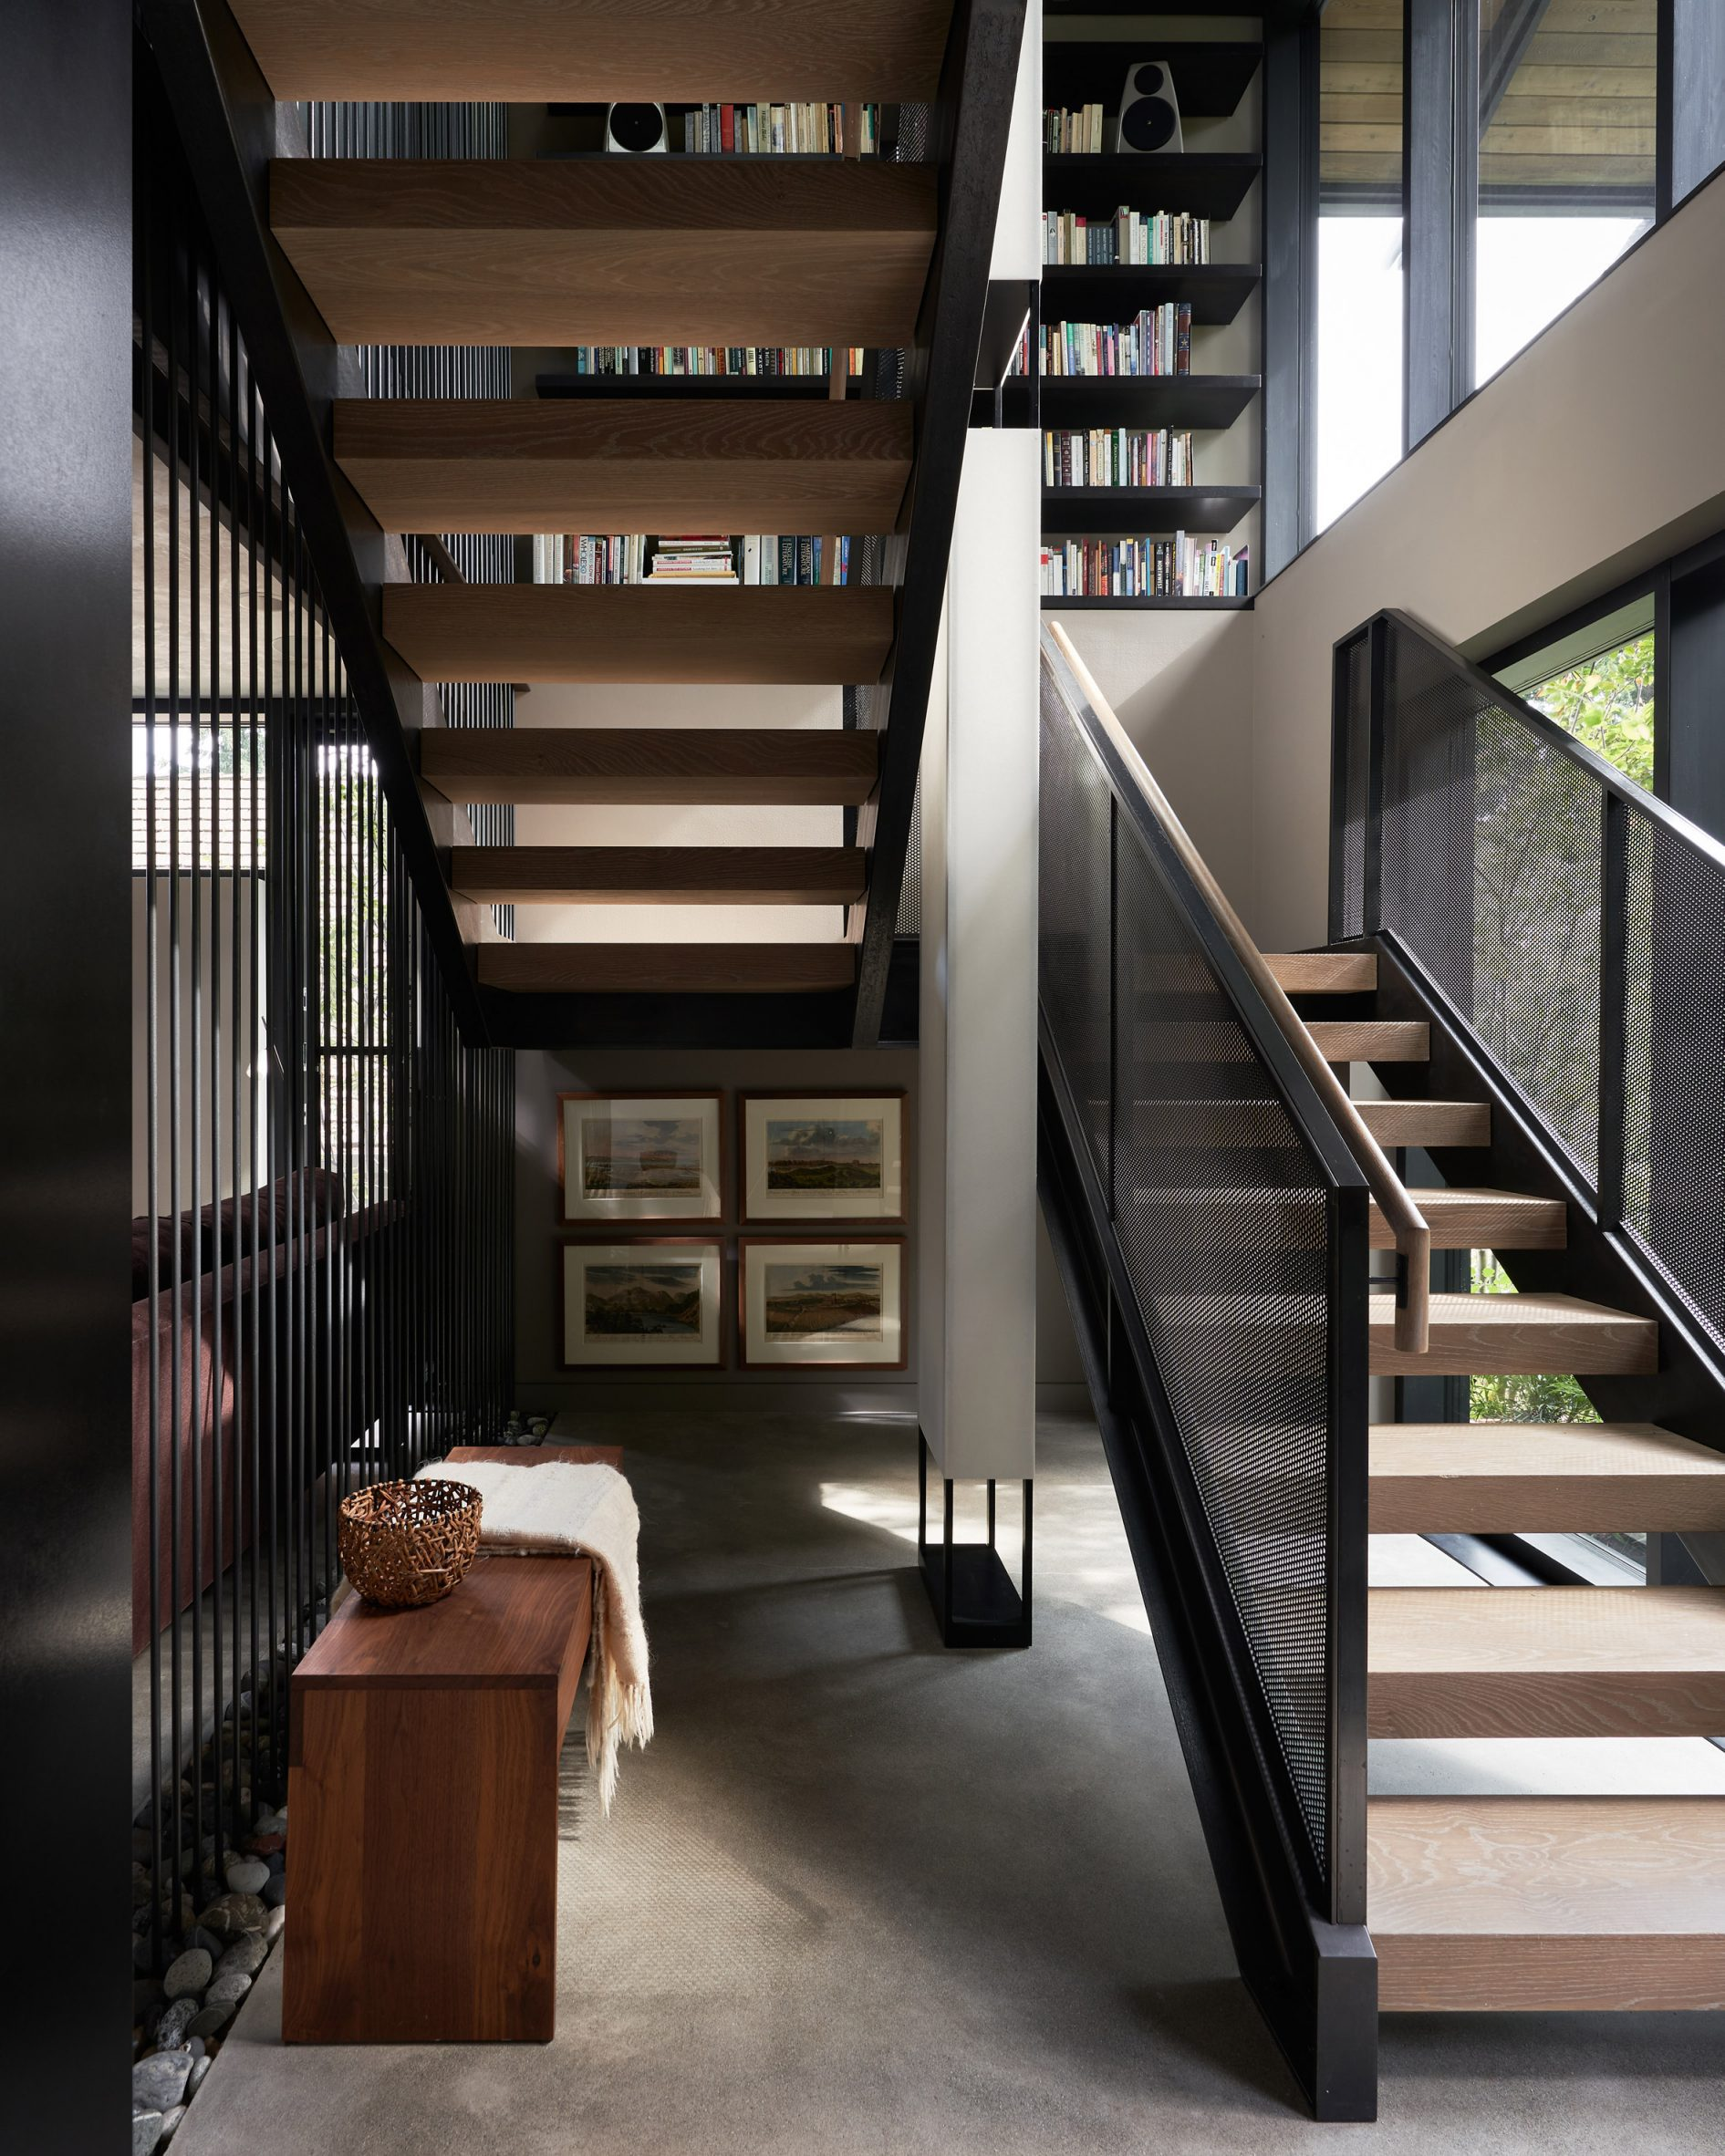 A staircase was added to the project